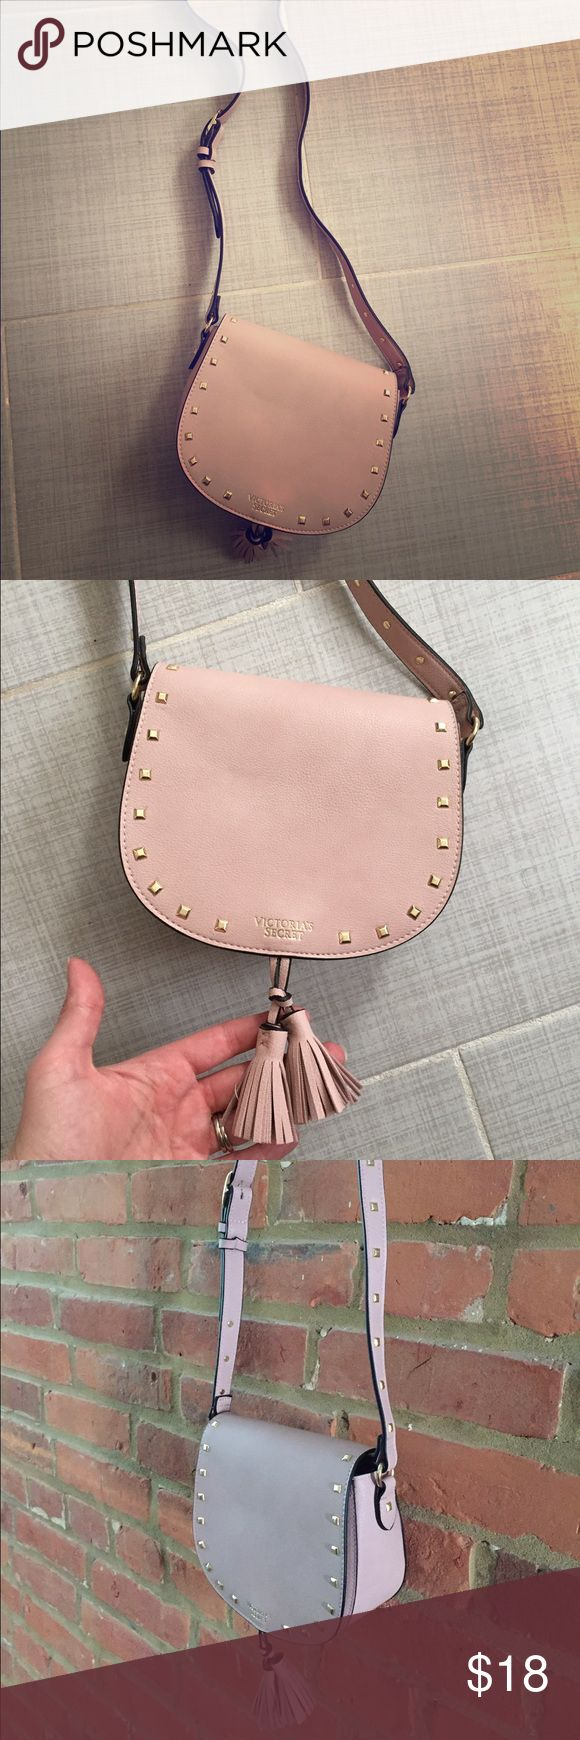 Victoria's Secret boho festival cross body bag Light pink, faux leather. Good size for phone, wallet, keys, and makeup. Gold accents. Fringe. Super cute + brand new/never used! Victoria's Secret Bags Crossbody Bags